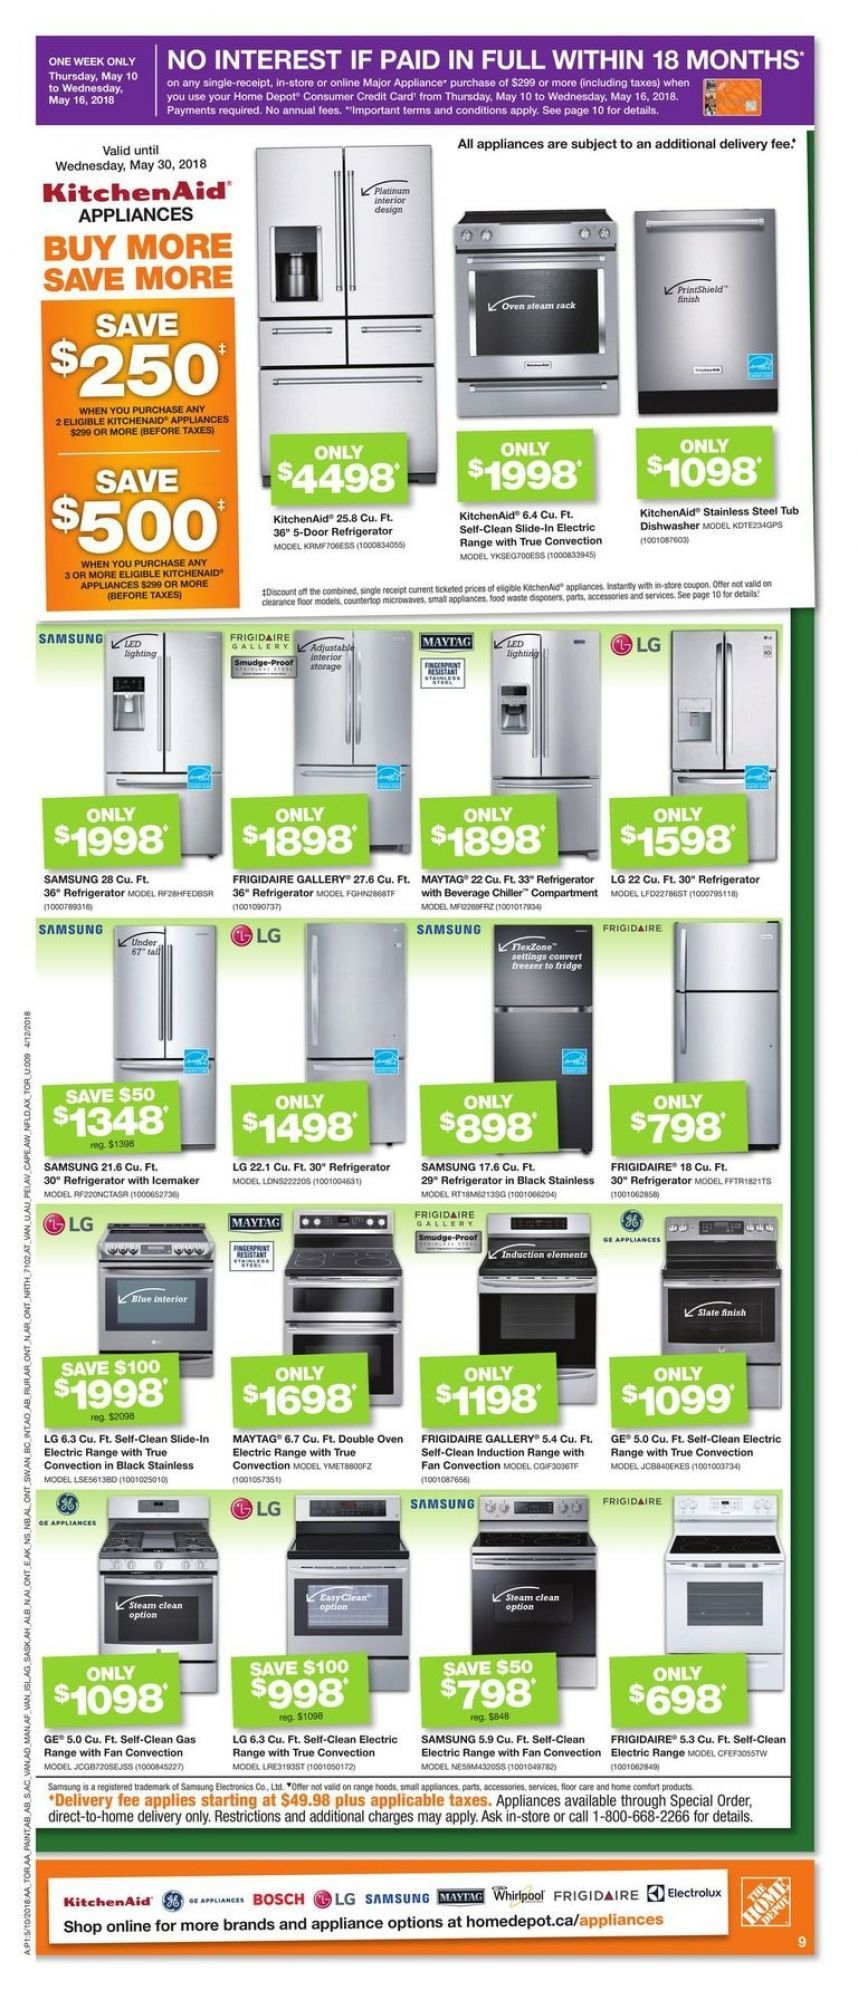 Flyer Home Depot On Canada From Thursday May 10 2018 To Wednesday May 16 2018 Home Depot Home Depot Store Flyer